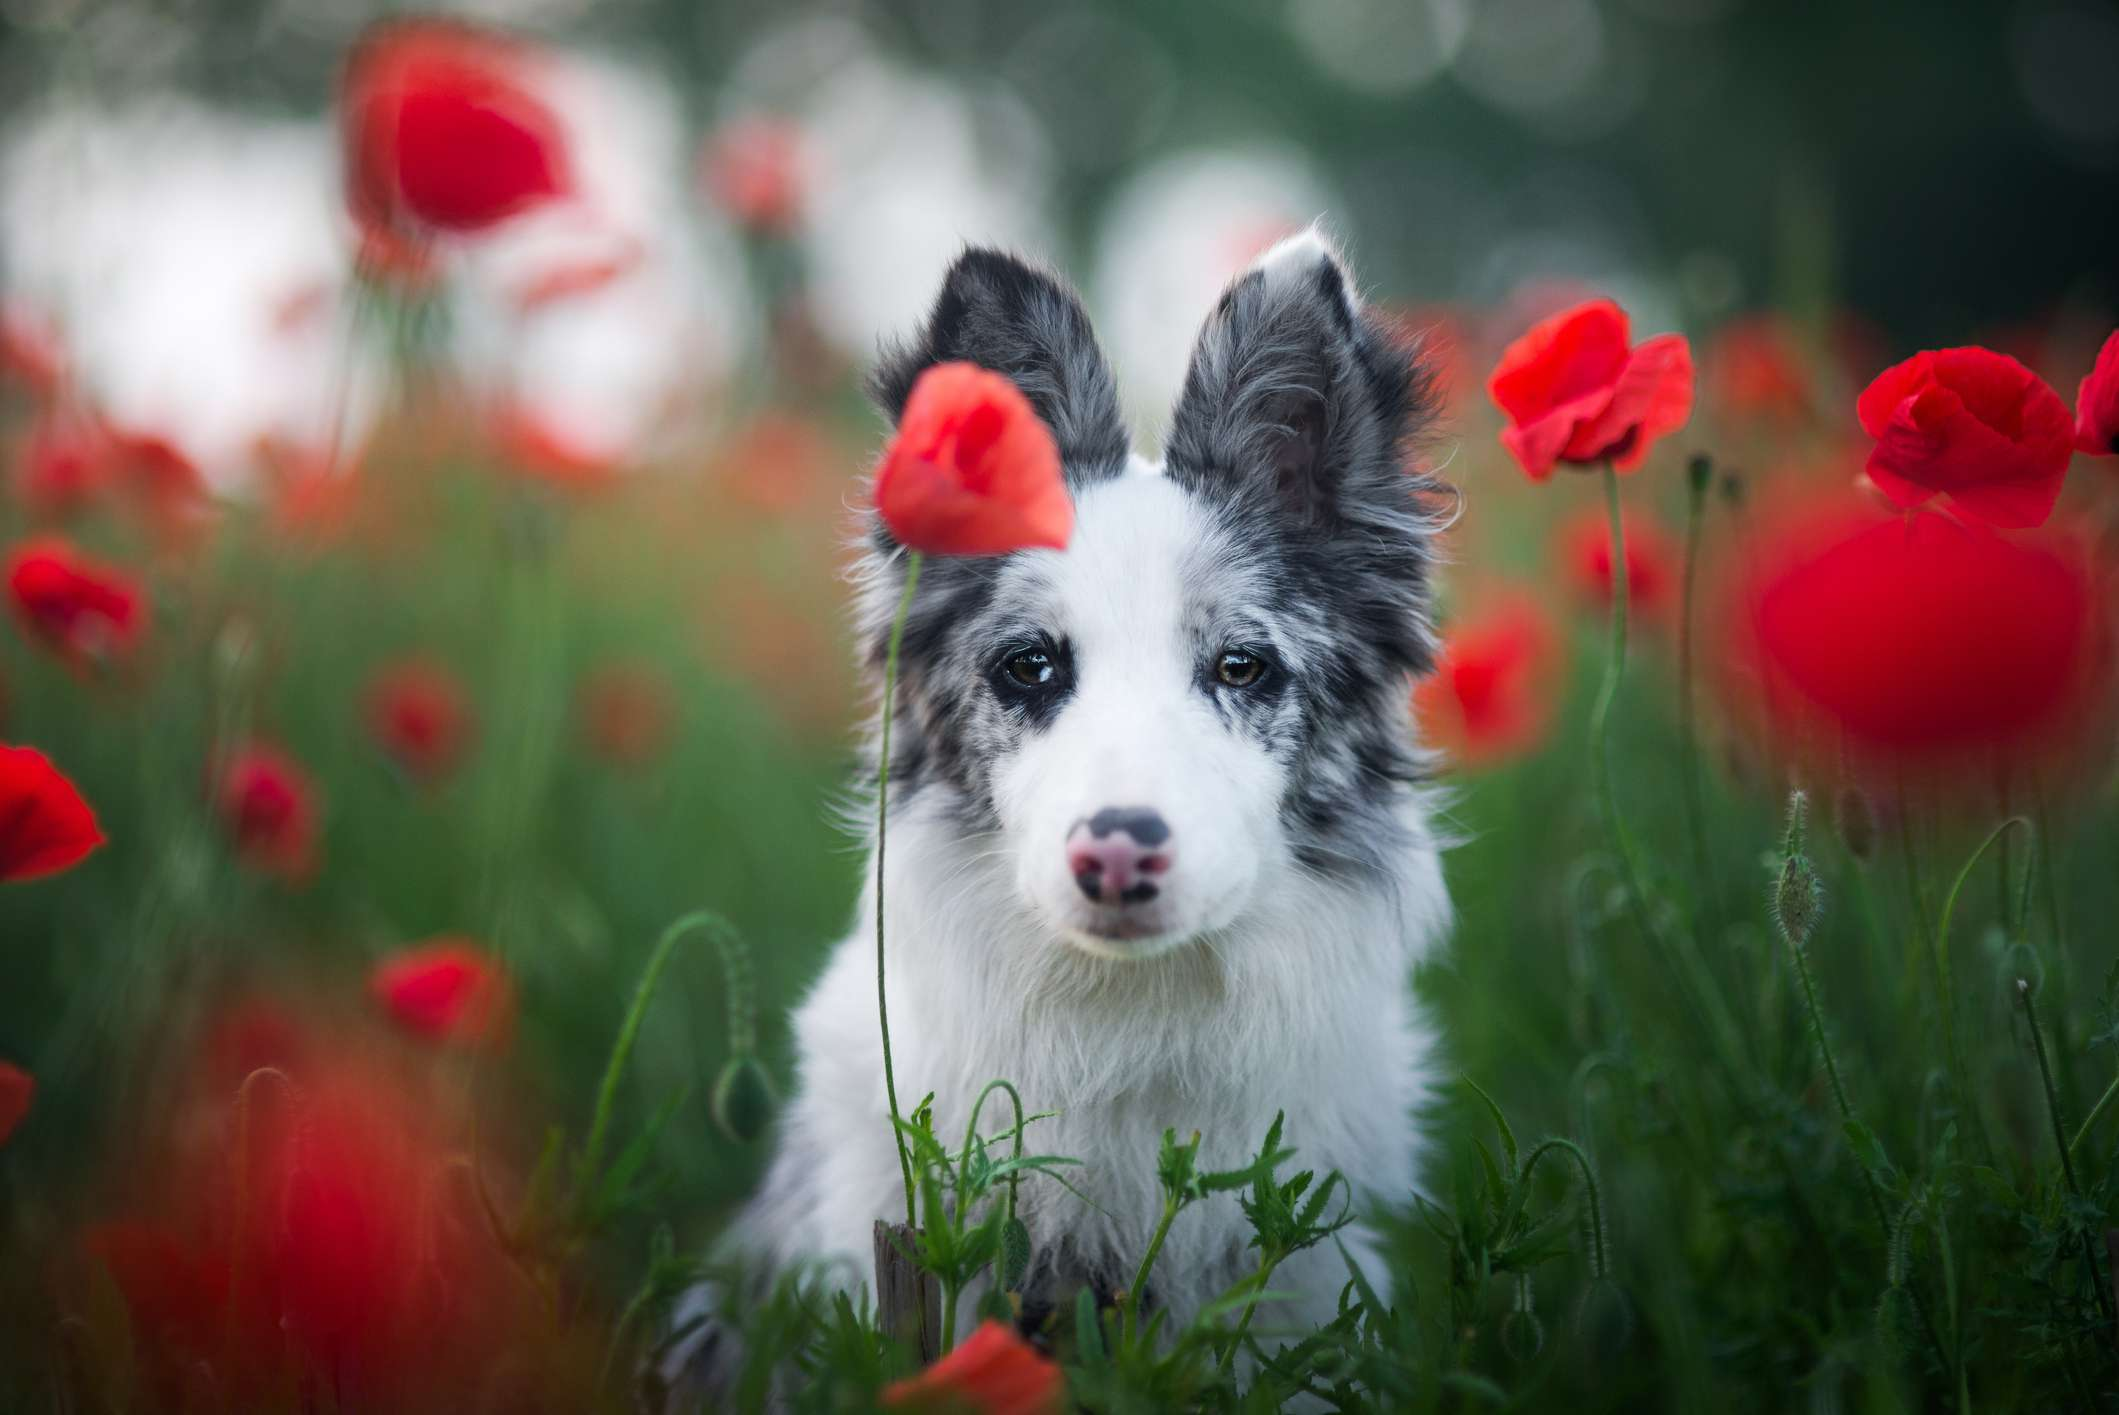 Dog looking into camera in field of poppy flowers